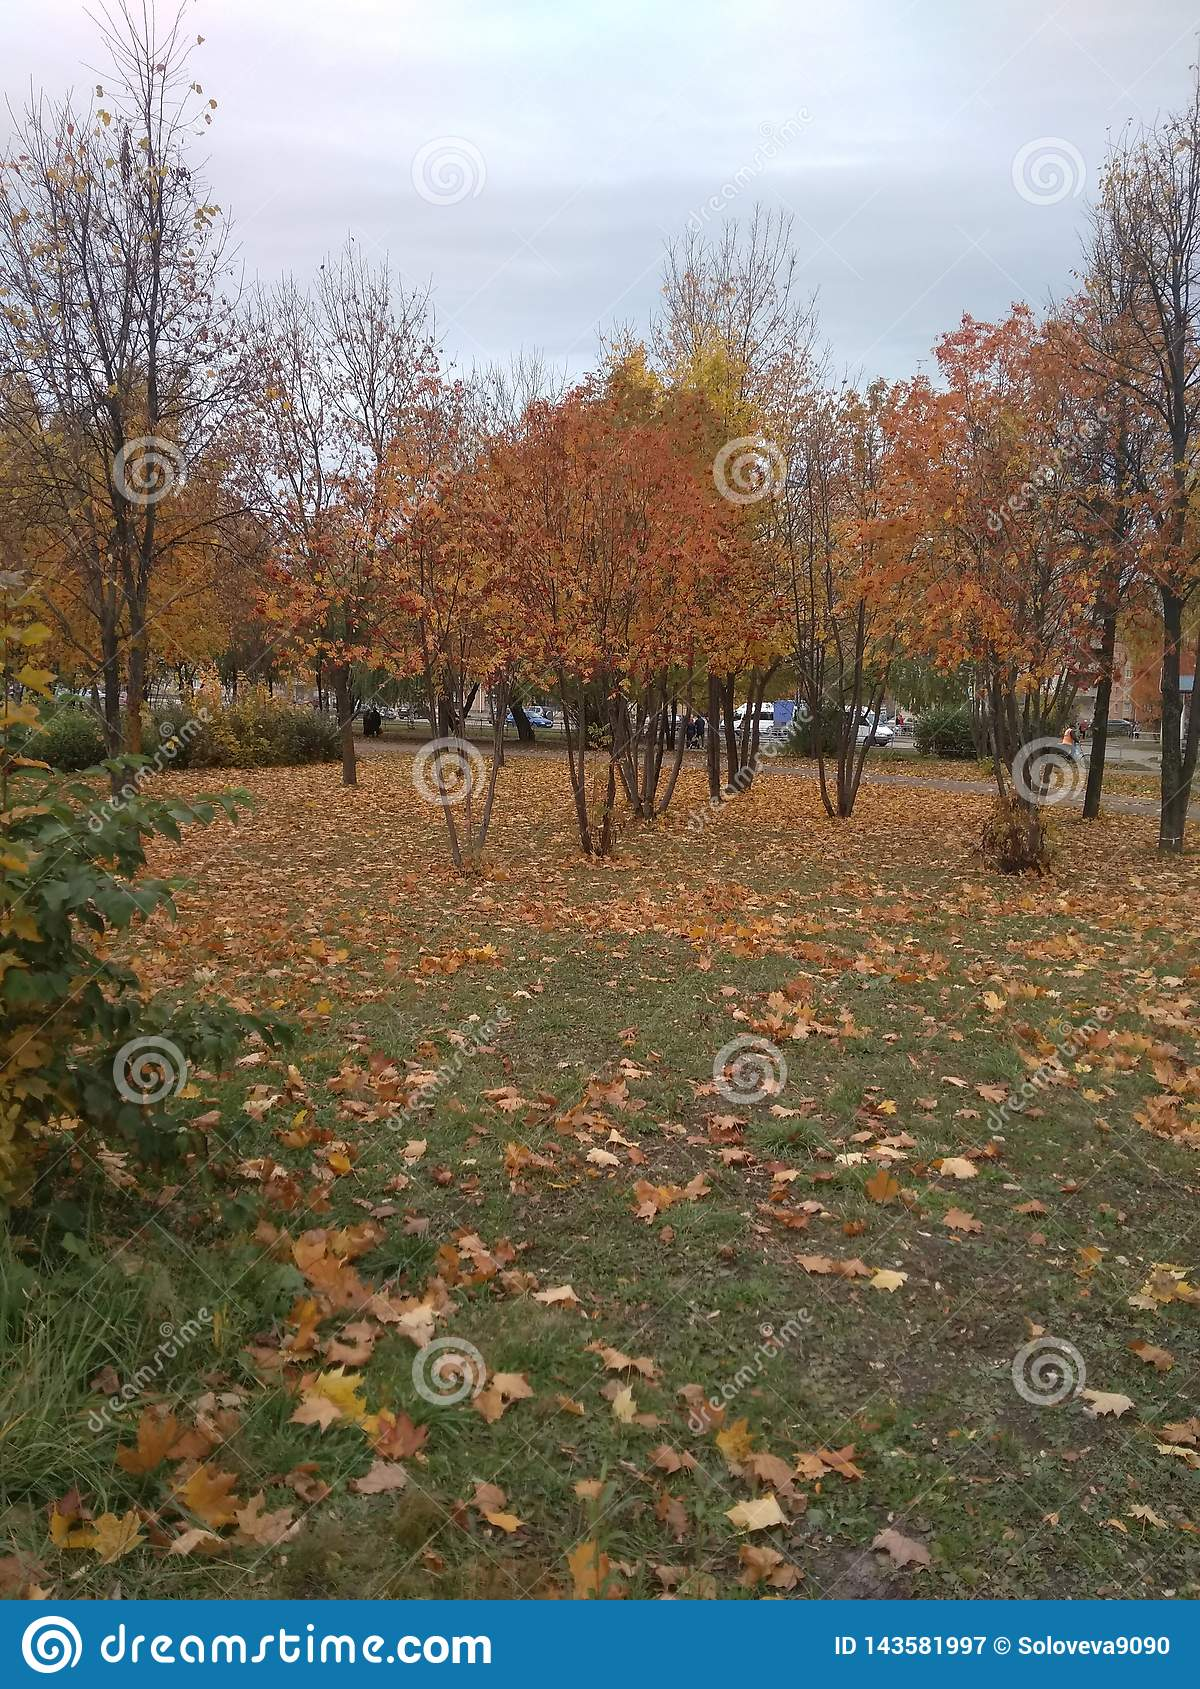 Golden autumn, yellow trees and fallen leaves